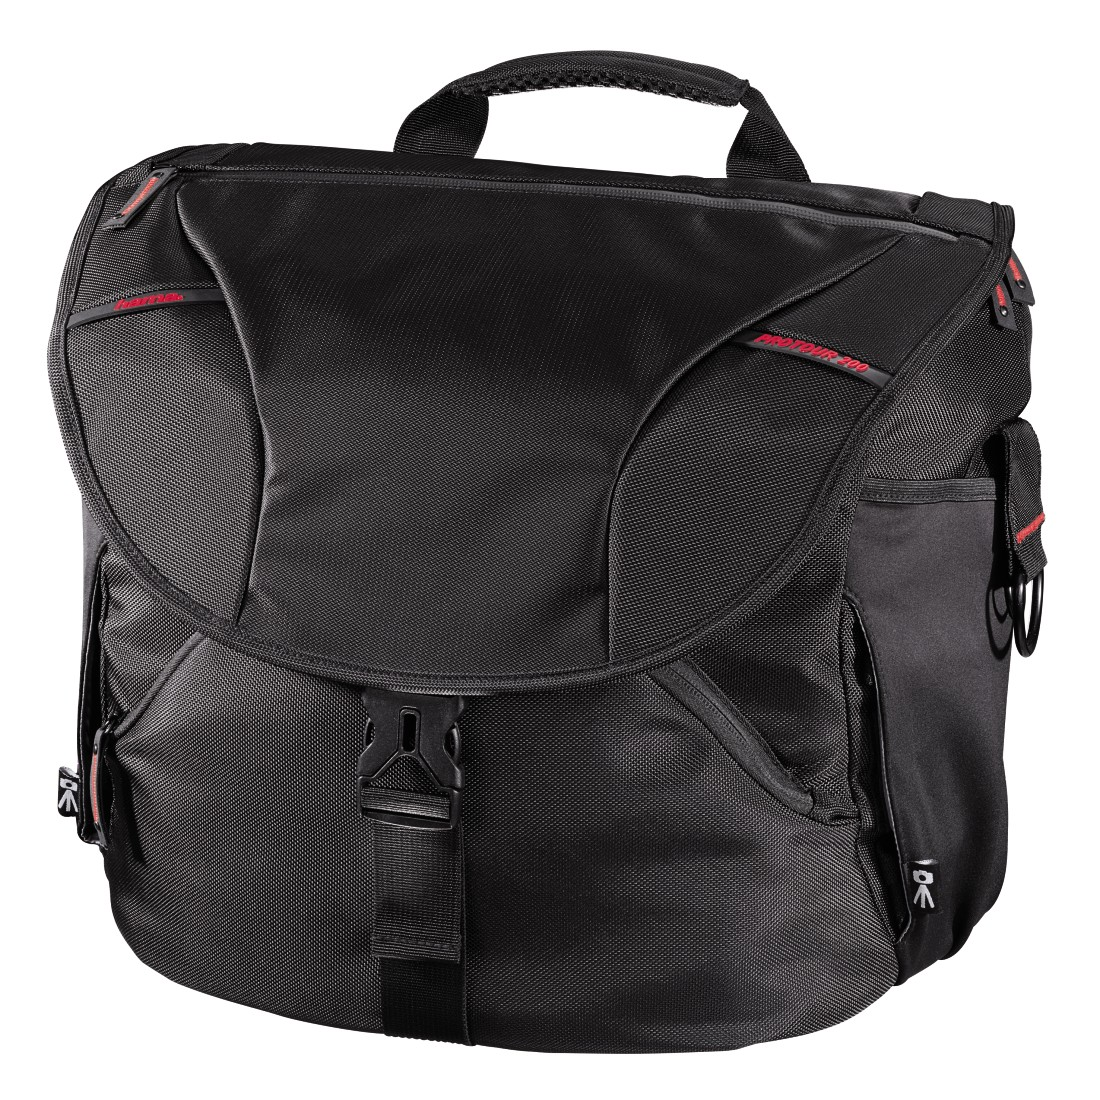 abx2 High-Res Image 2 - Hama, Protour Camera Bag, 200, black